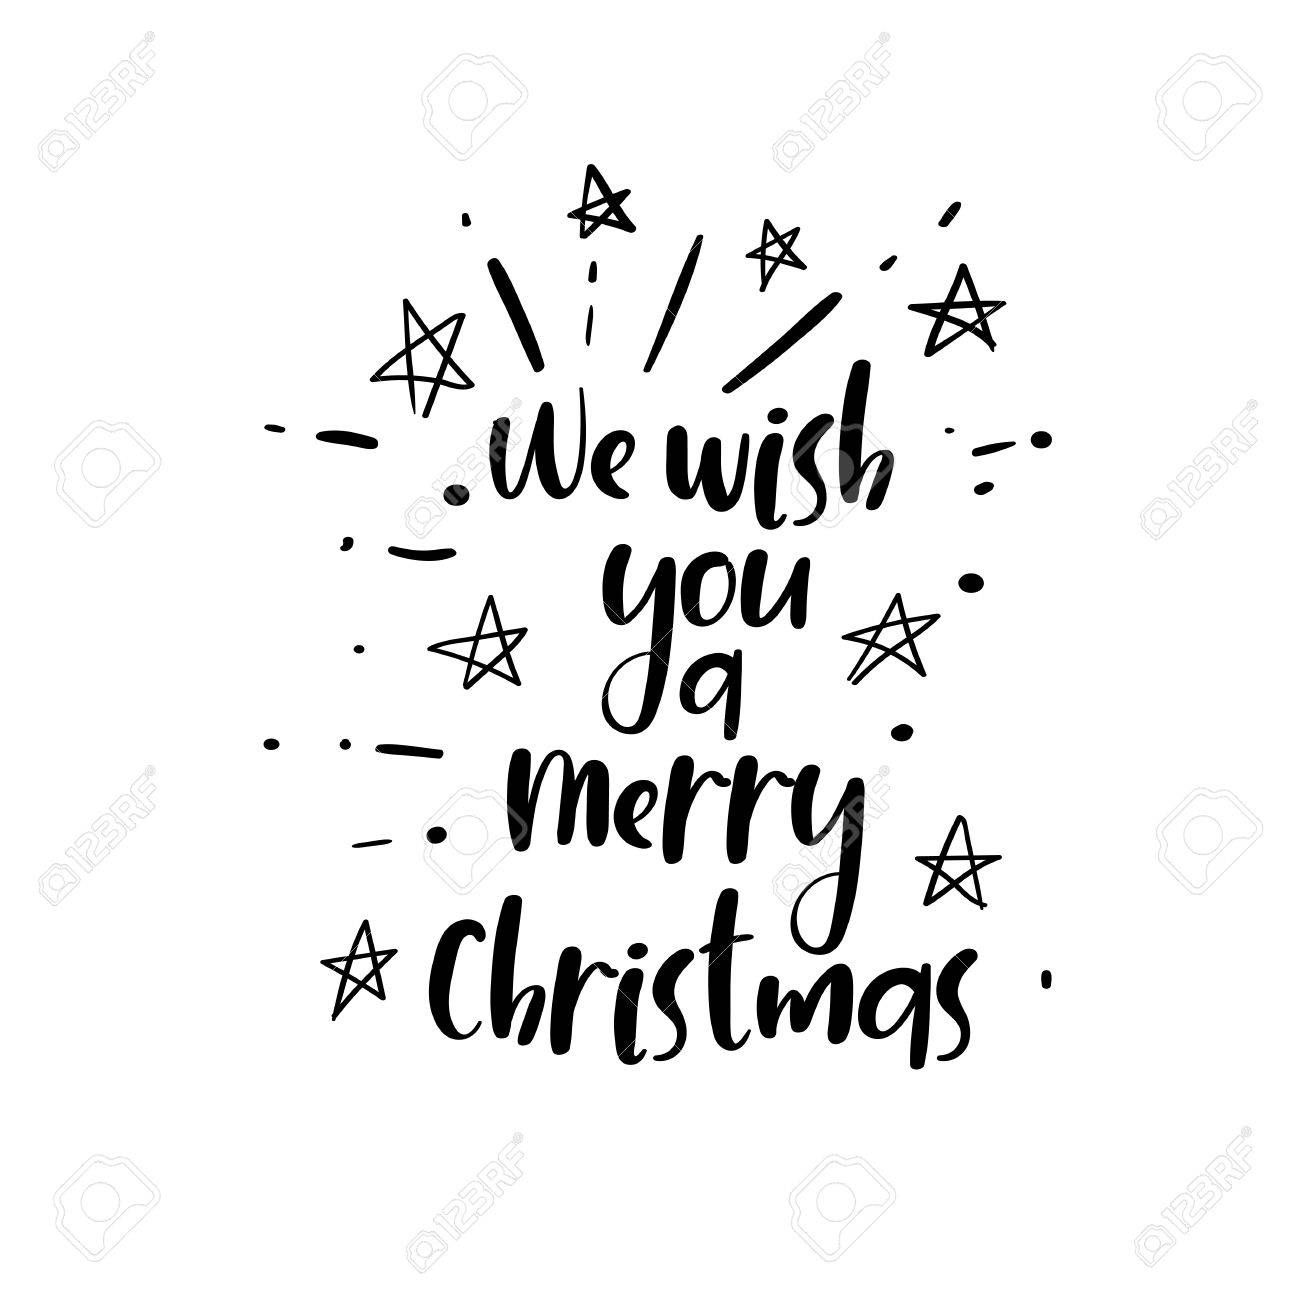 We Wish You A Merry Christmas Handwritten Text On A White Background ...